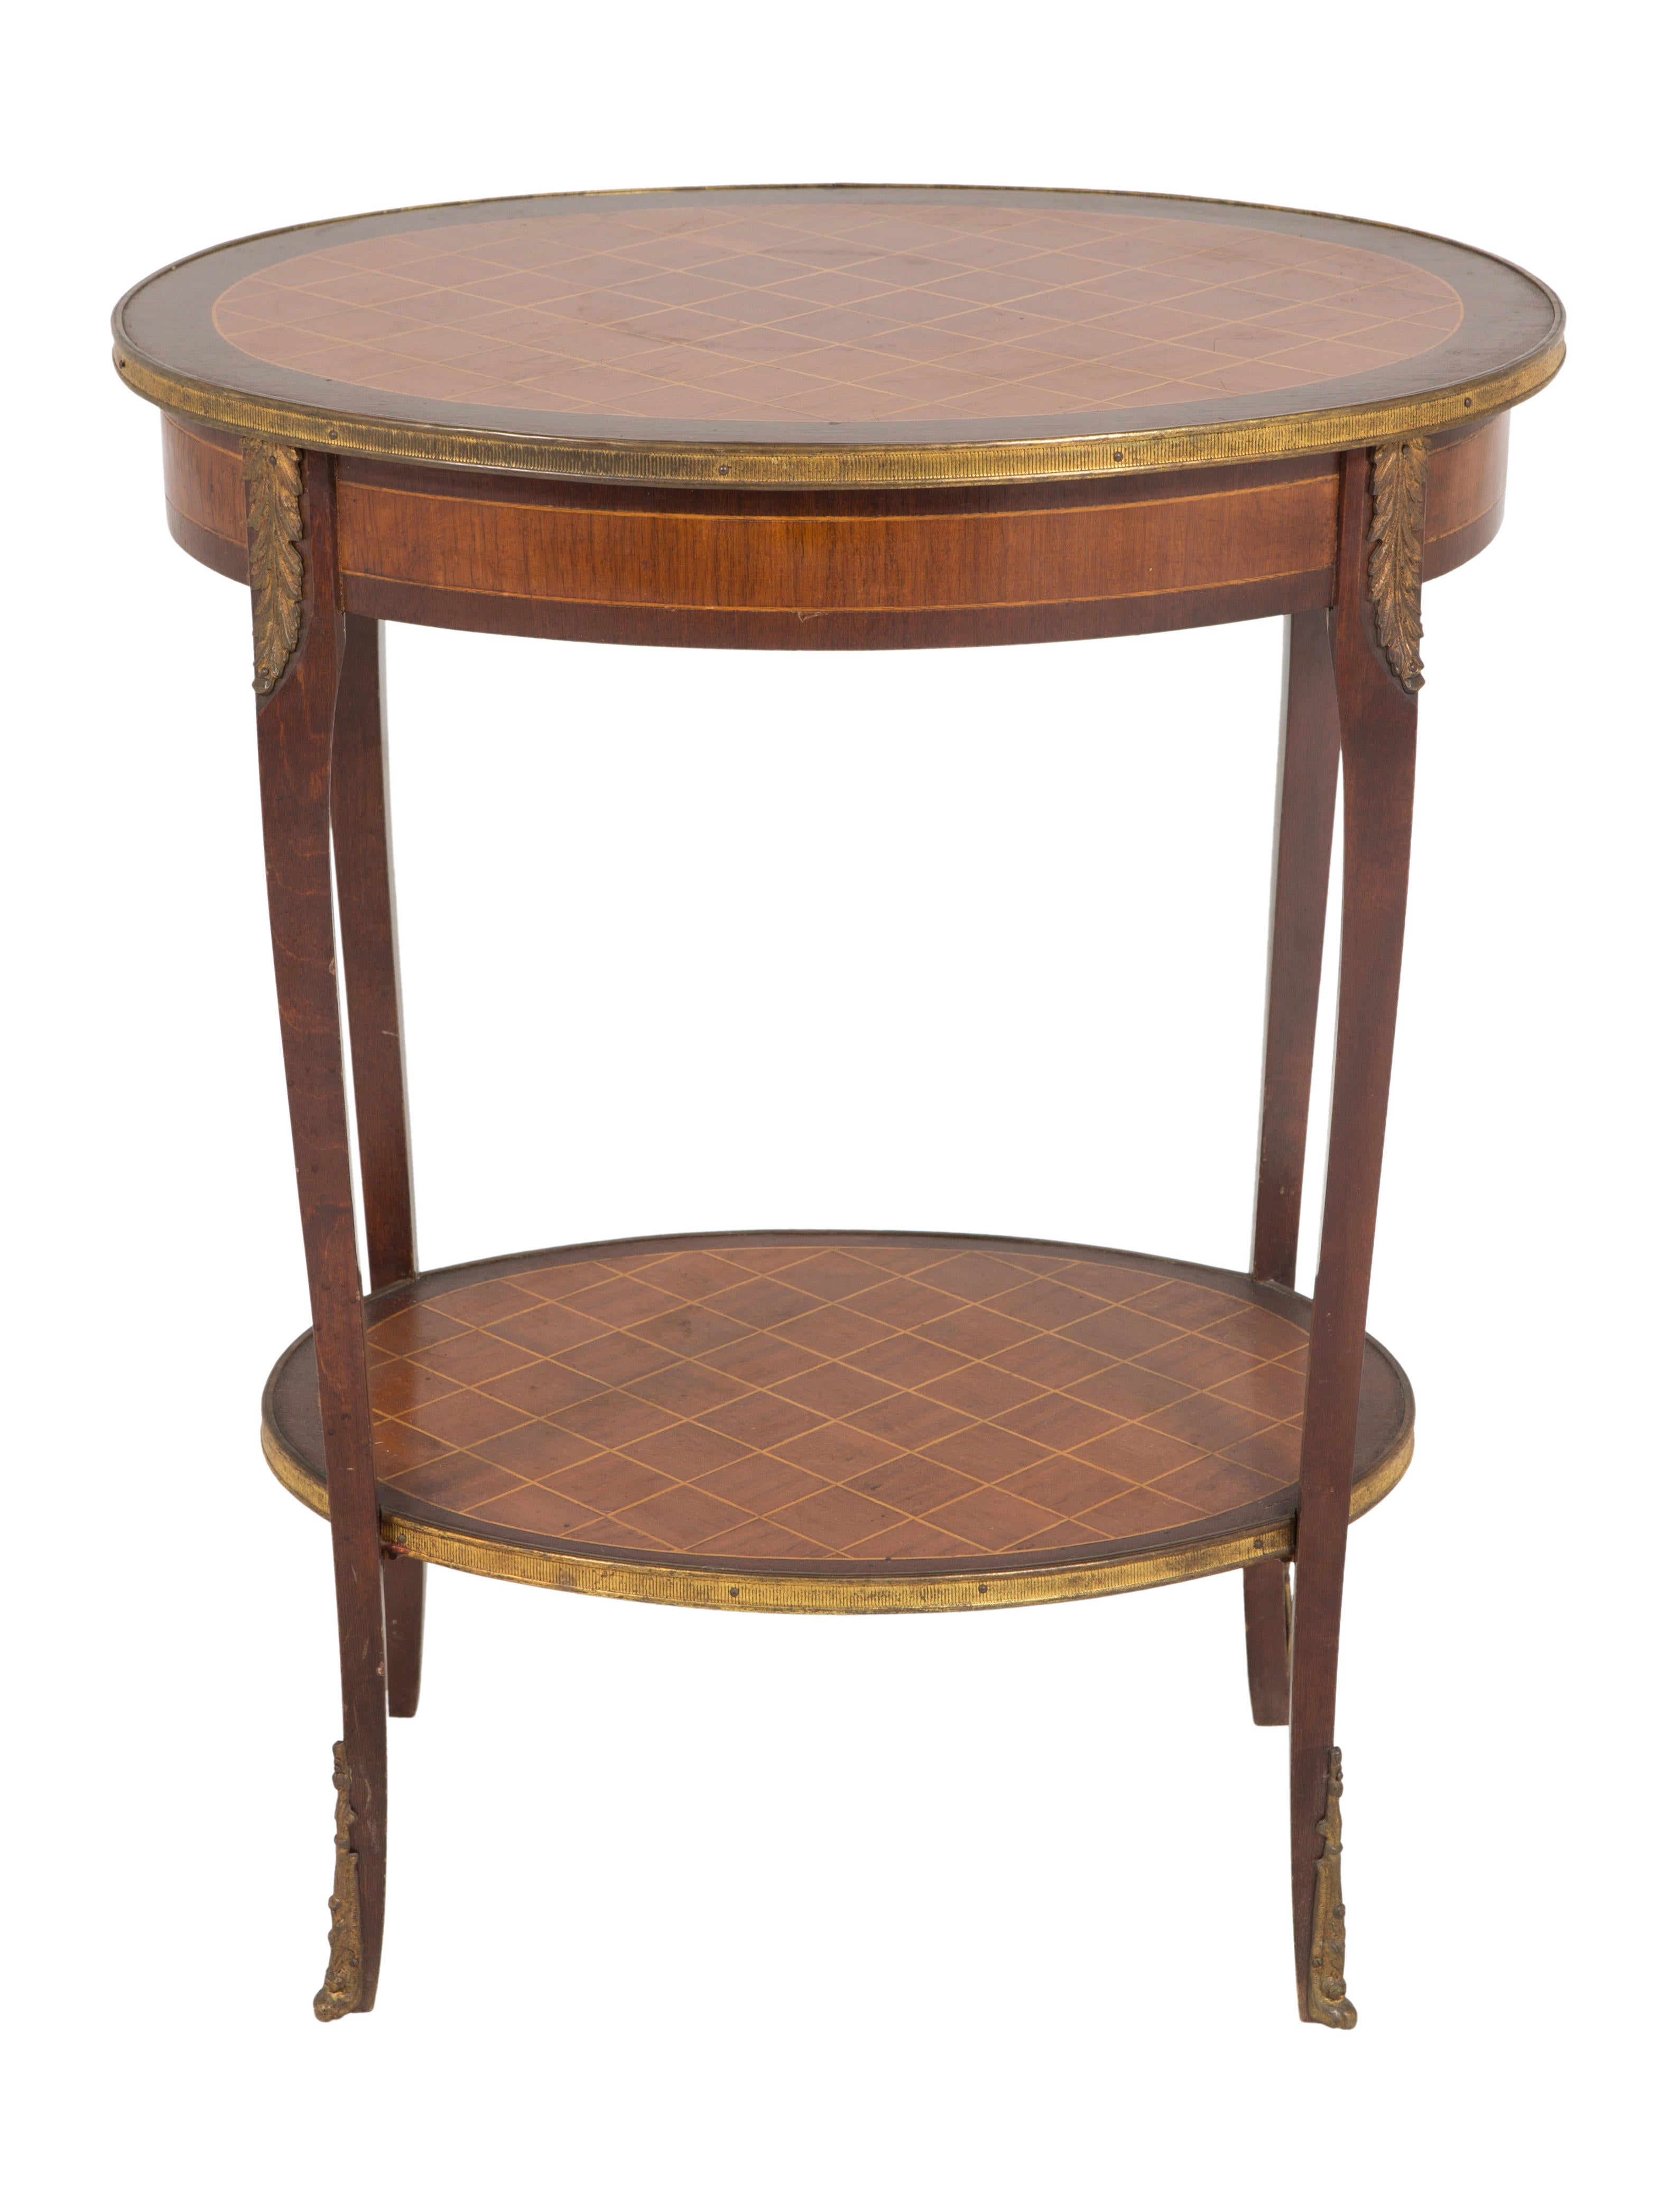 Oval French Style Table Furniture Furni20229 The Realreal